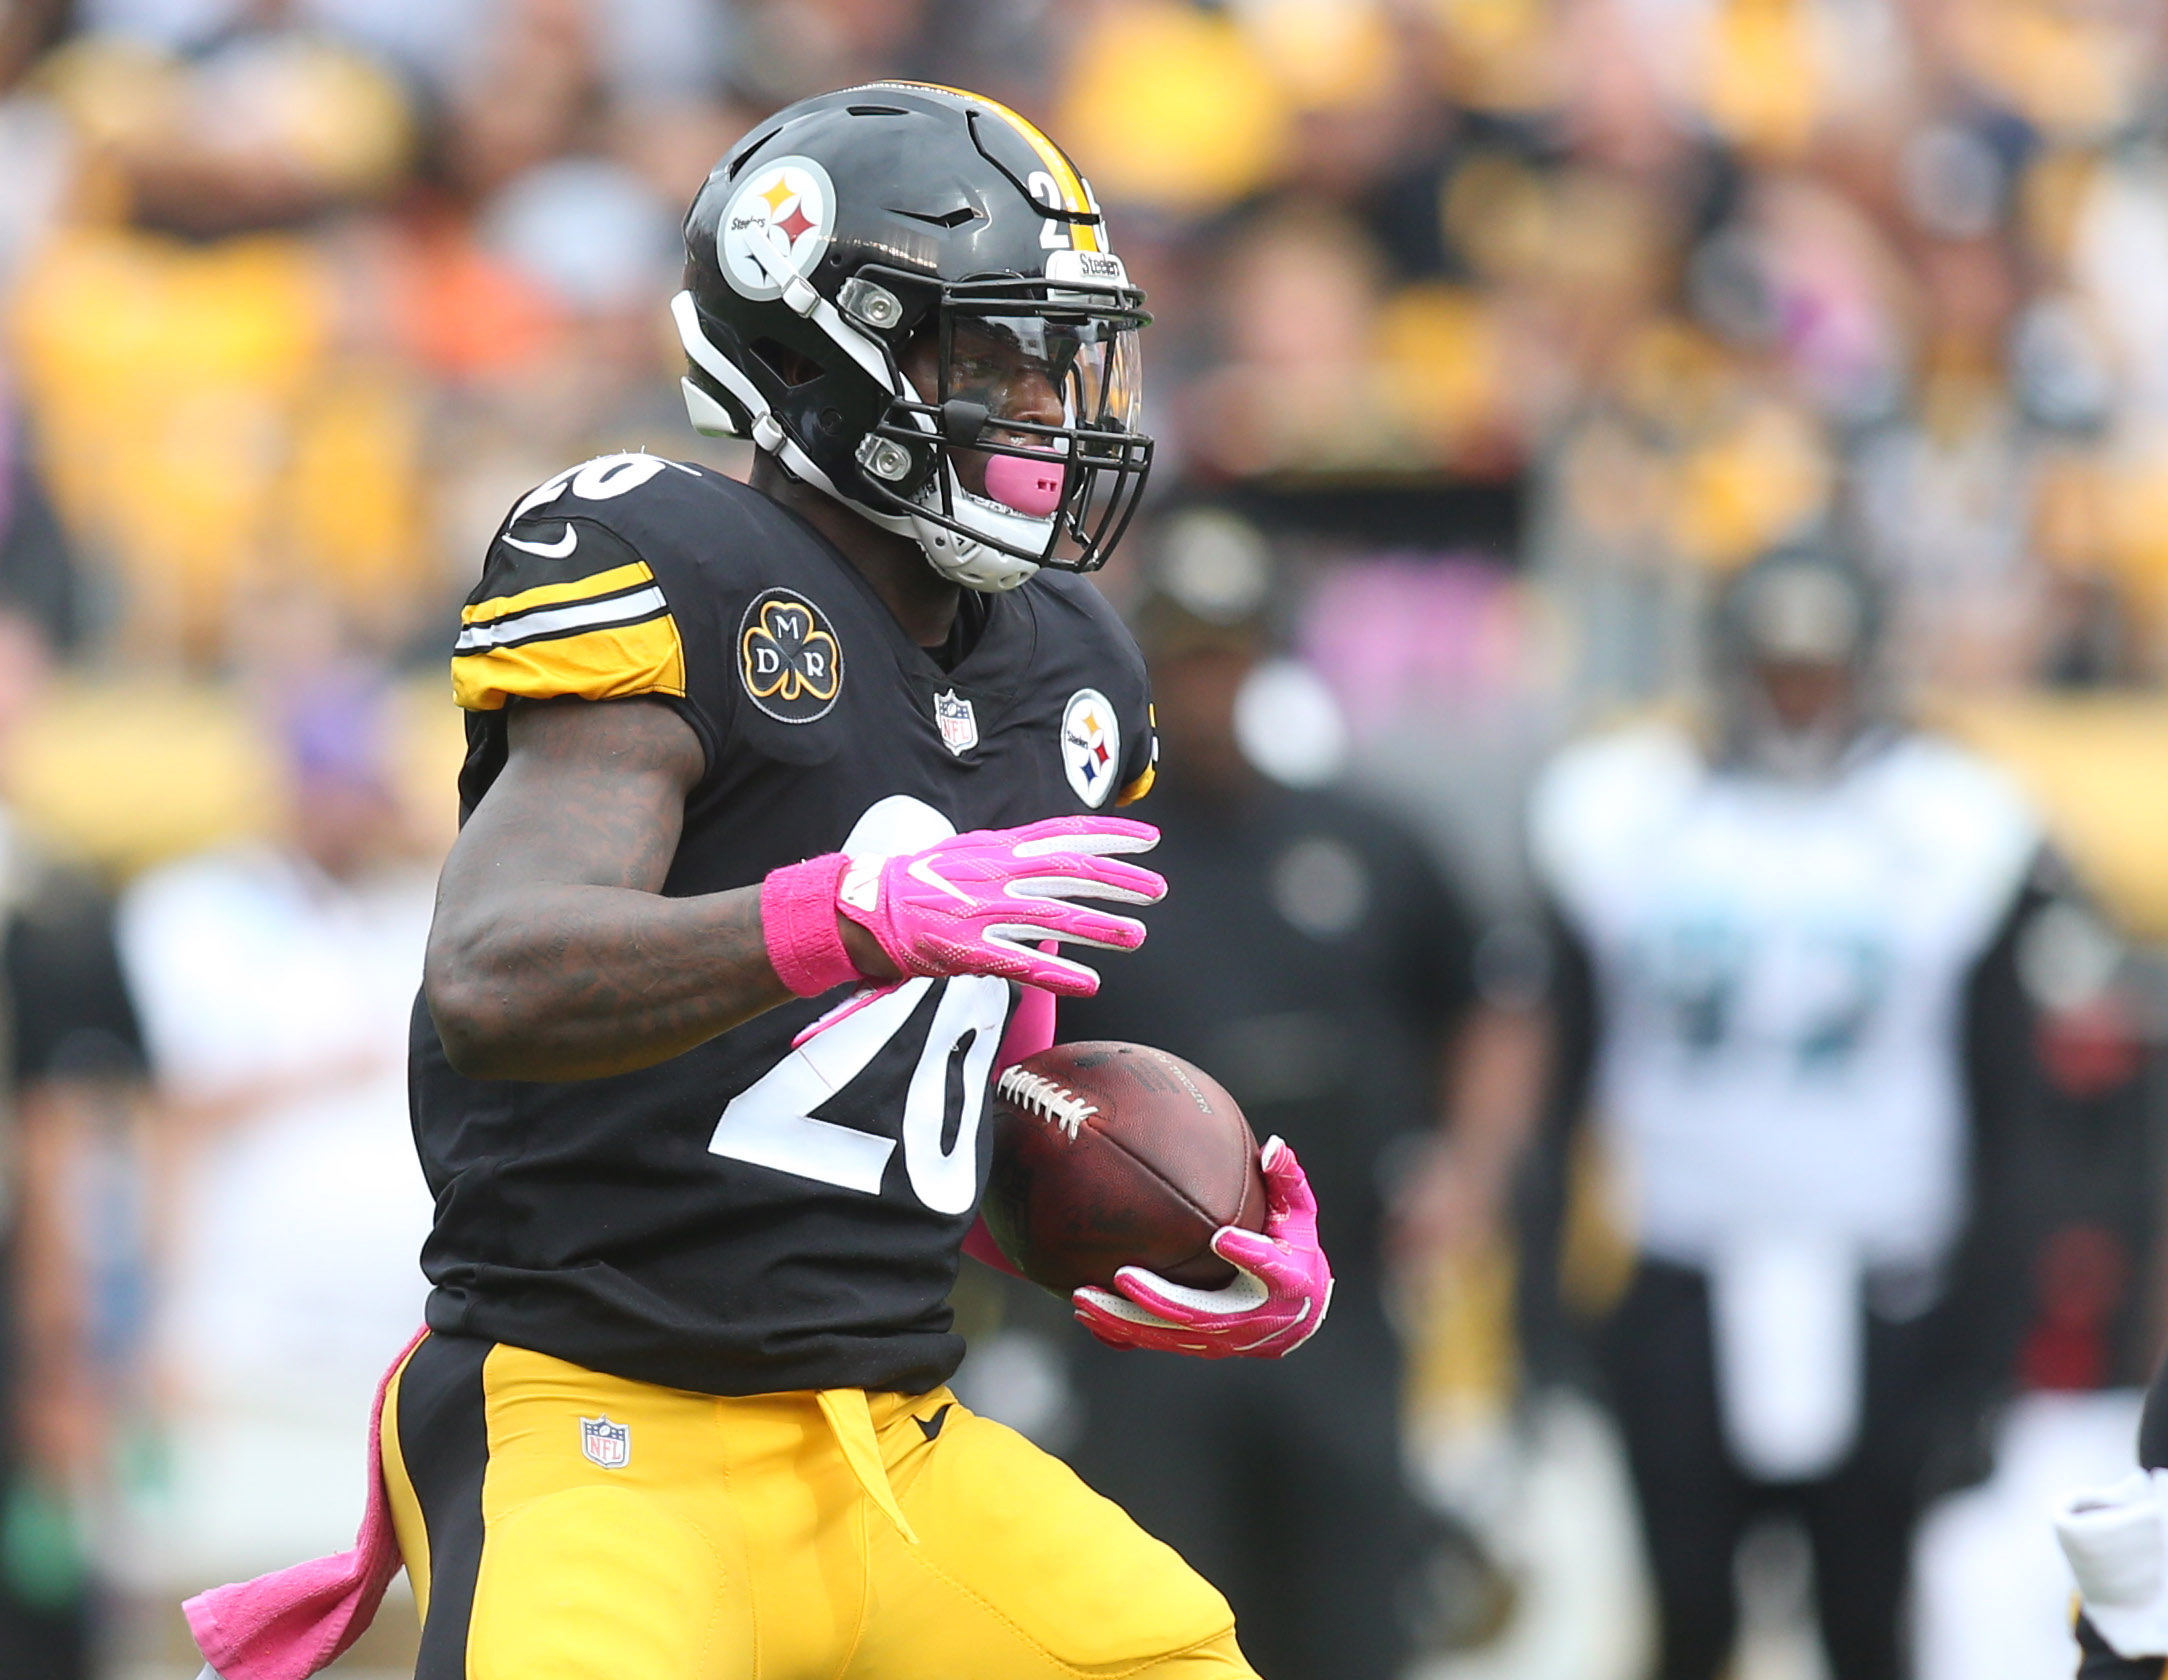 Report: Le'Veon Bell agrees to four year deal with the New